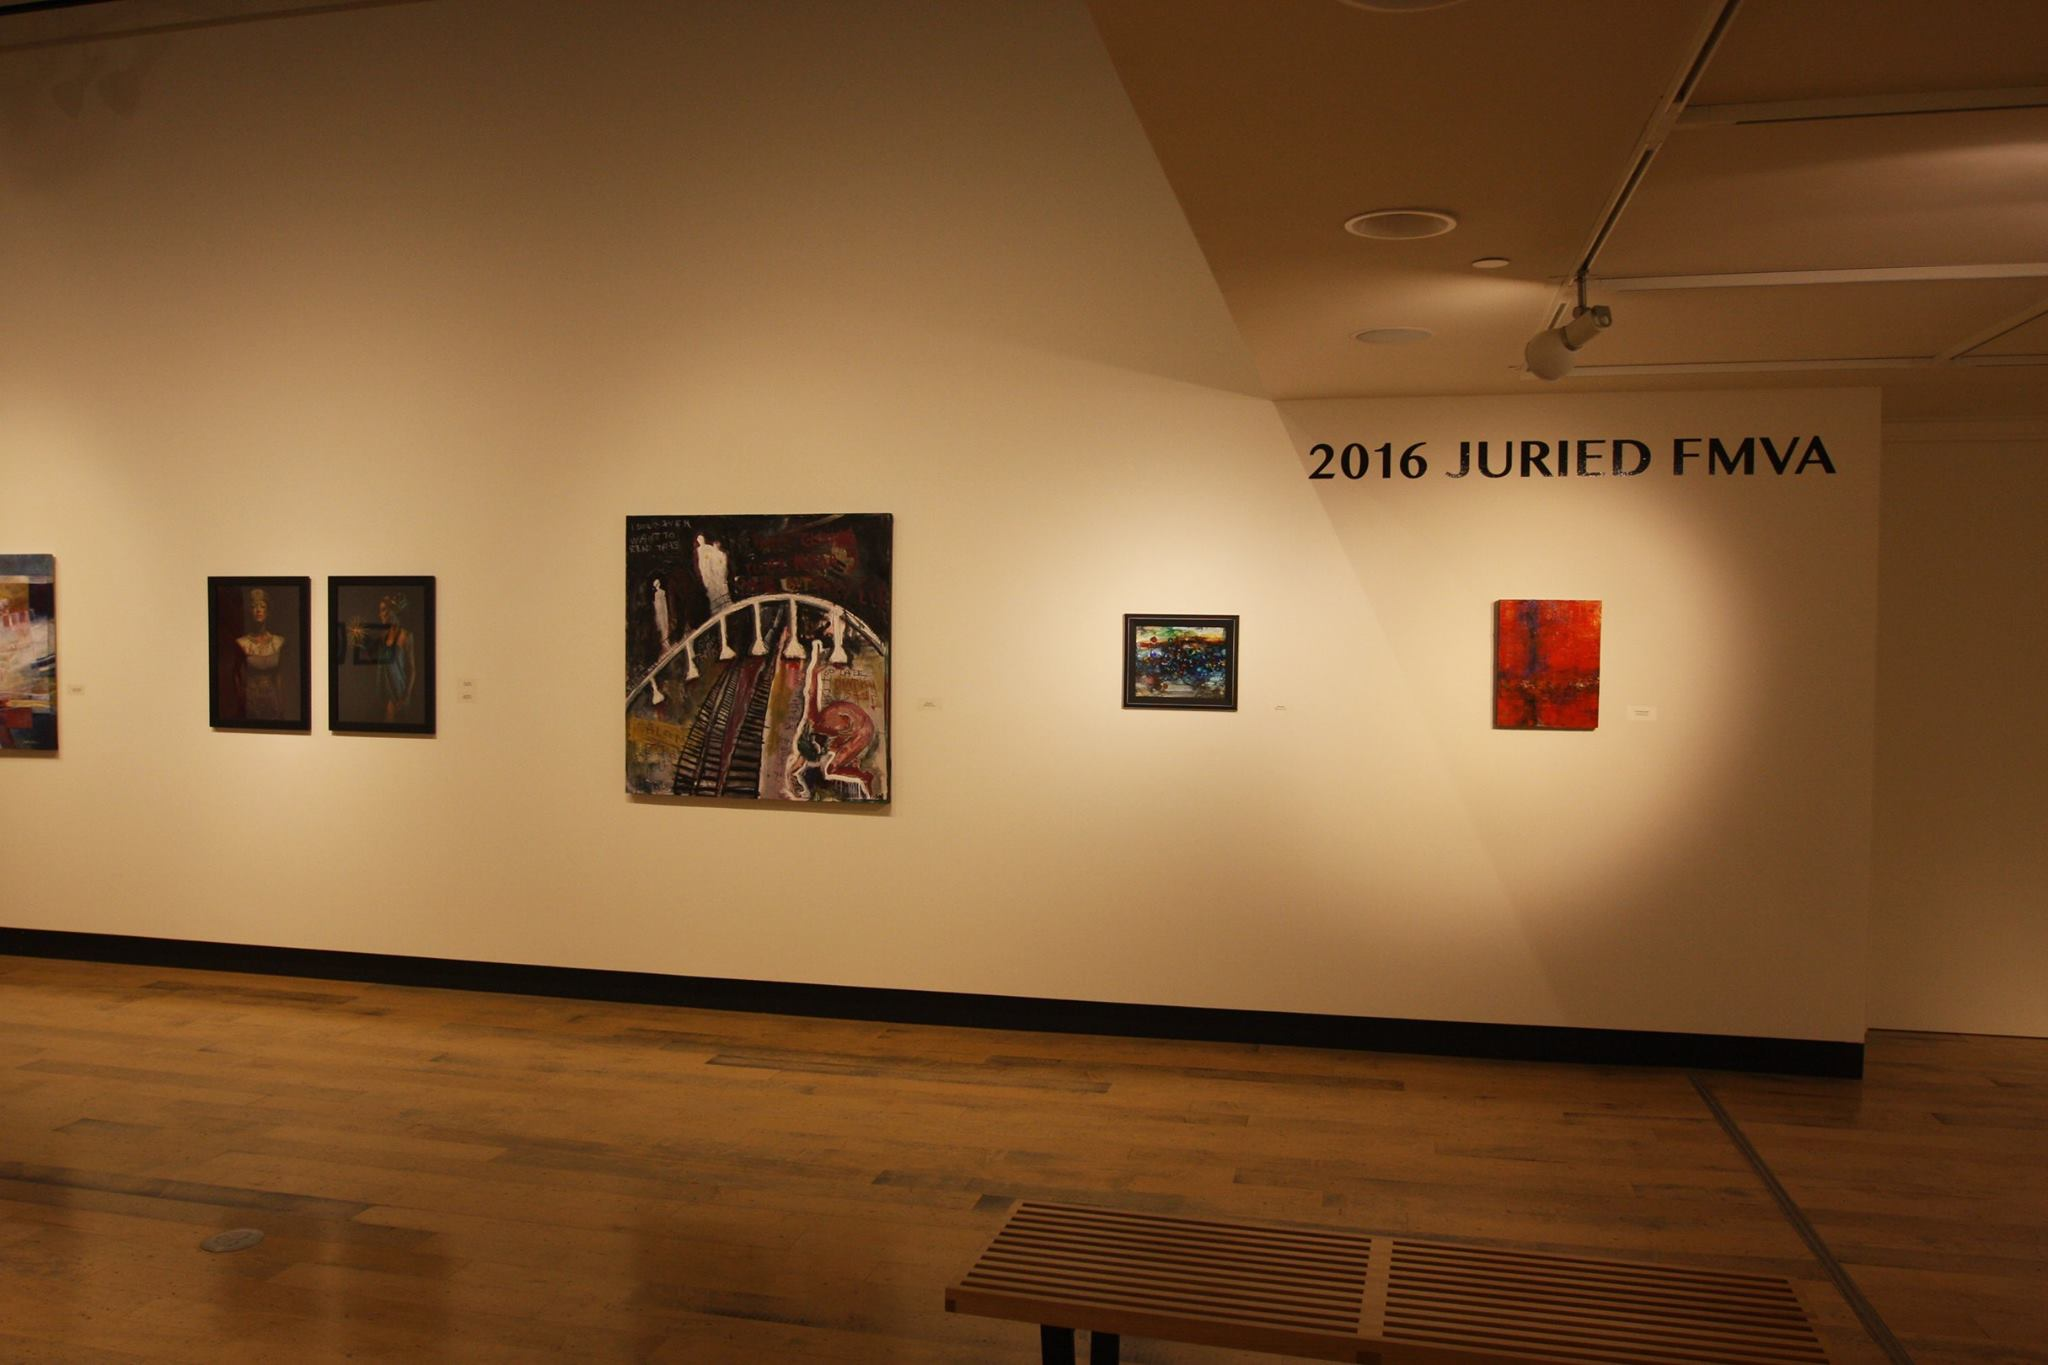 2016 Juried -Memorial Union Gallery